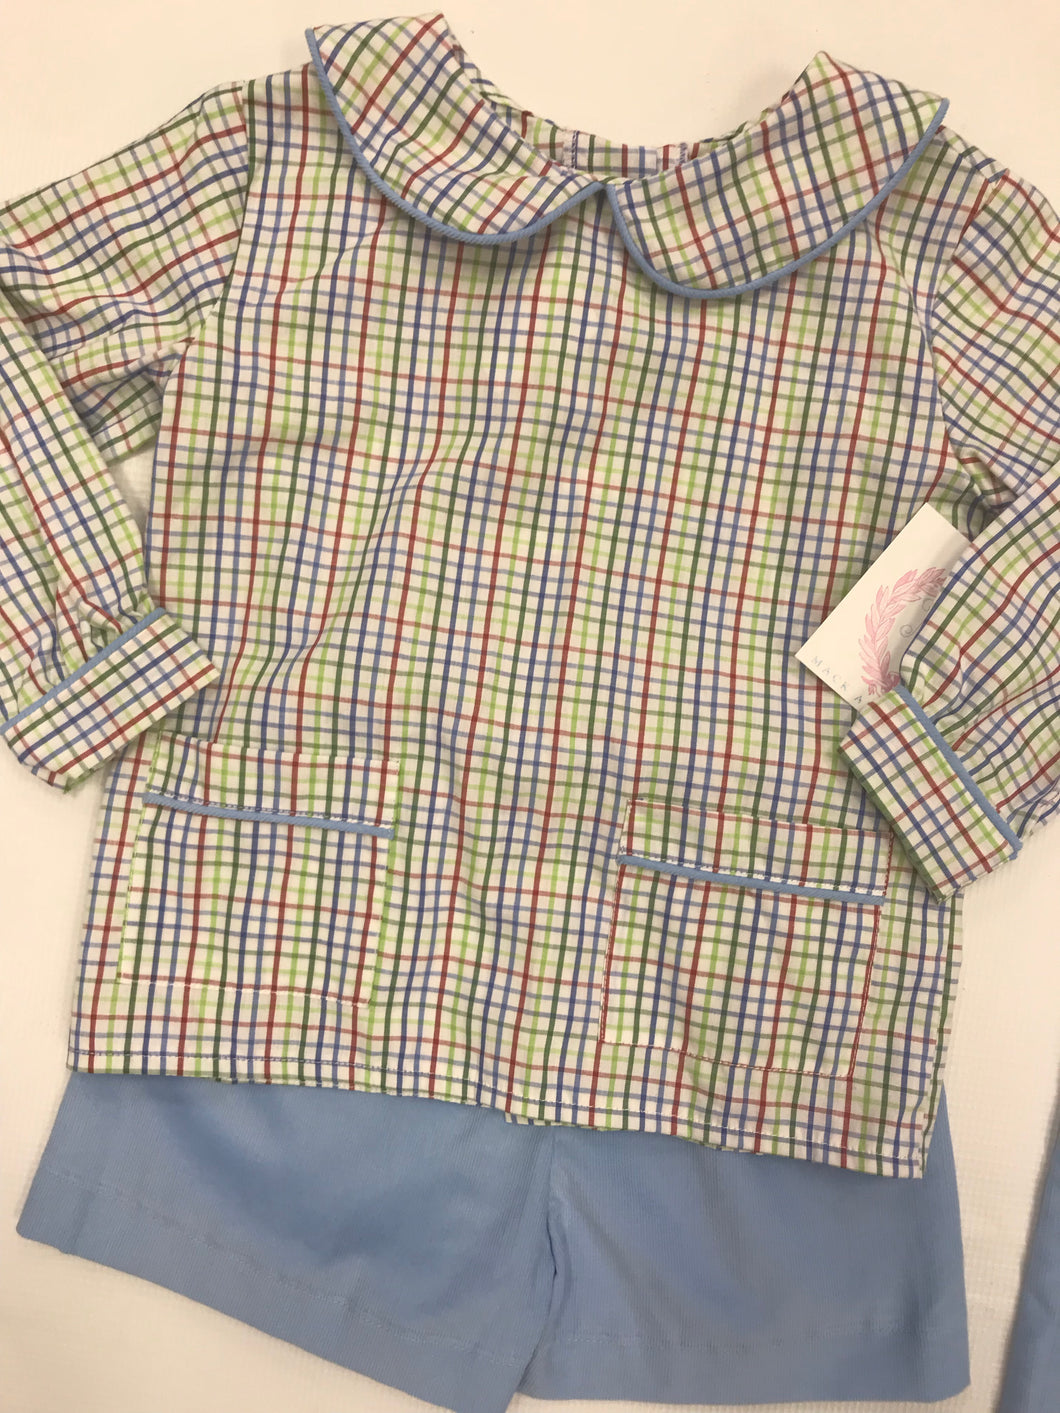 Saddlebrook Plaid Parker Shirt with Blue Cord Shorts